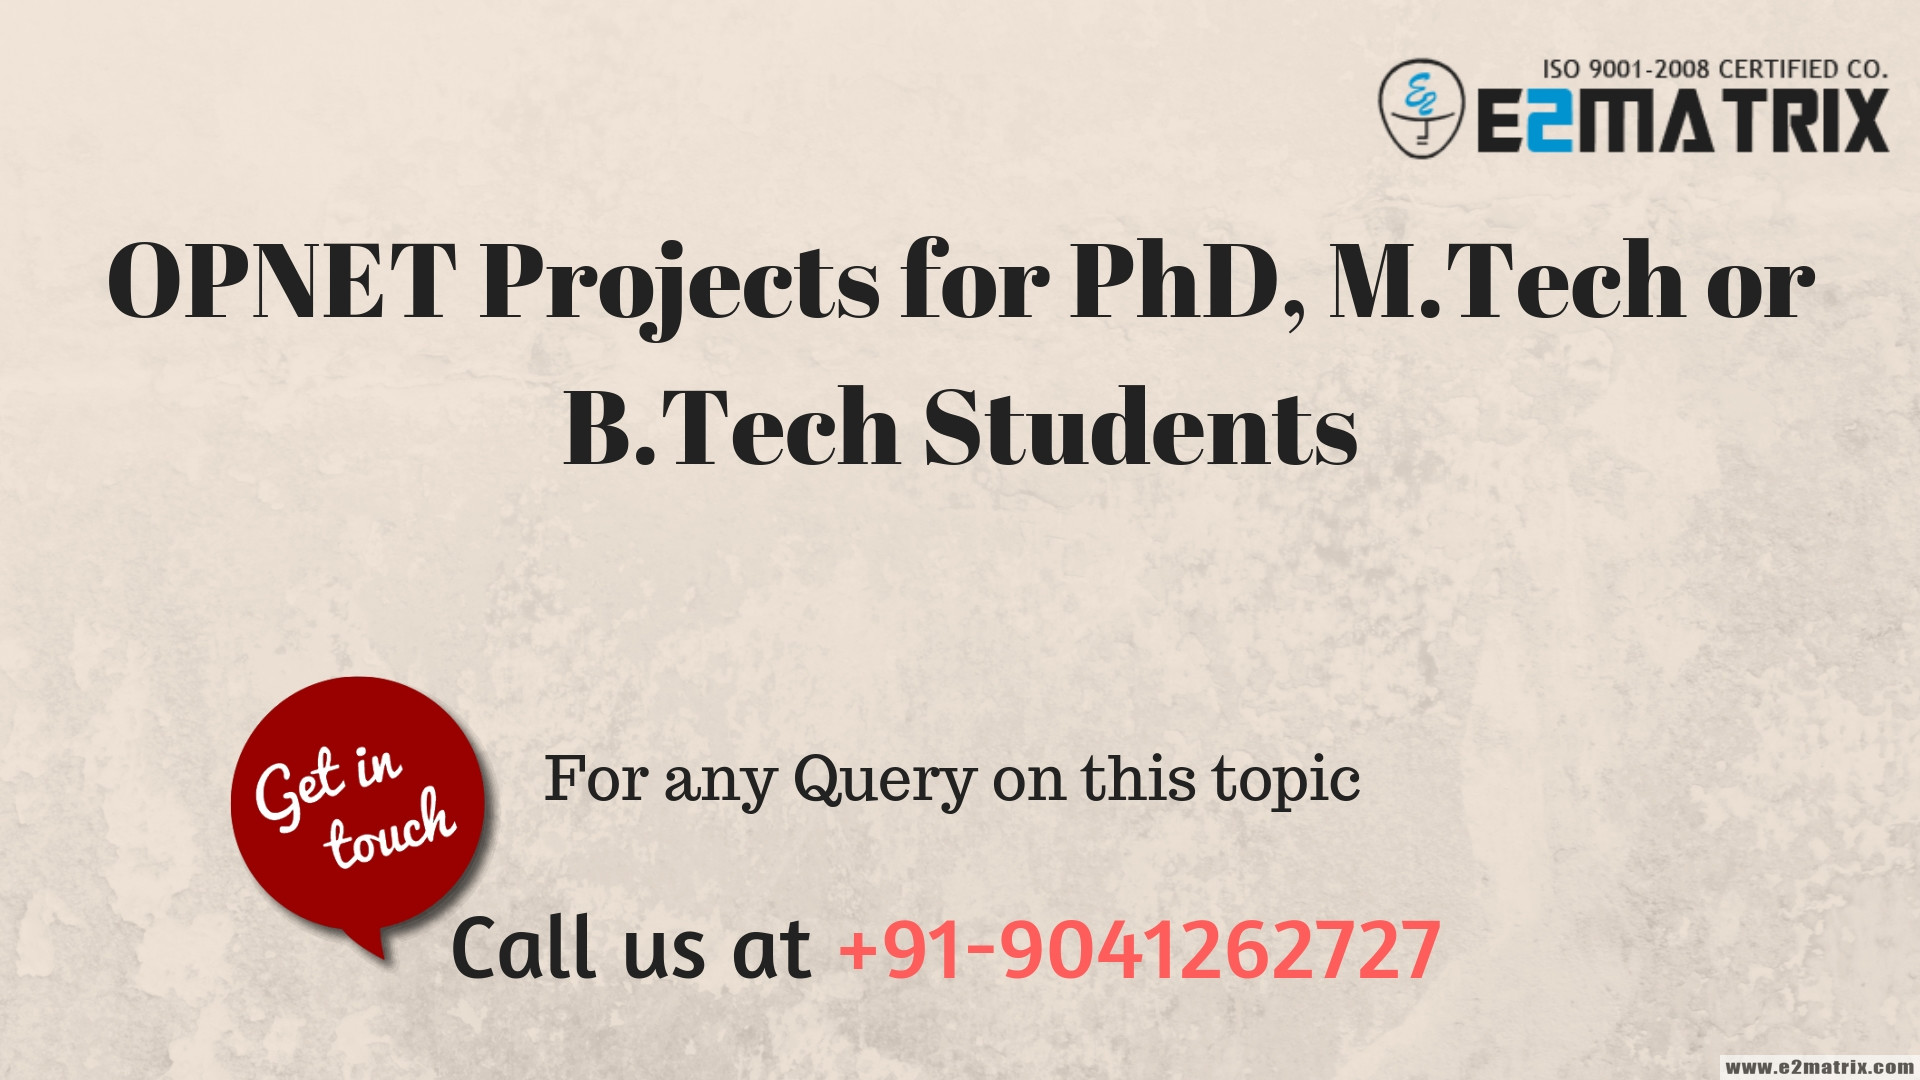 OPNET Projects for PhD, M.Tech or B.Tech students